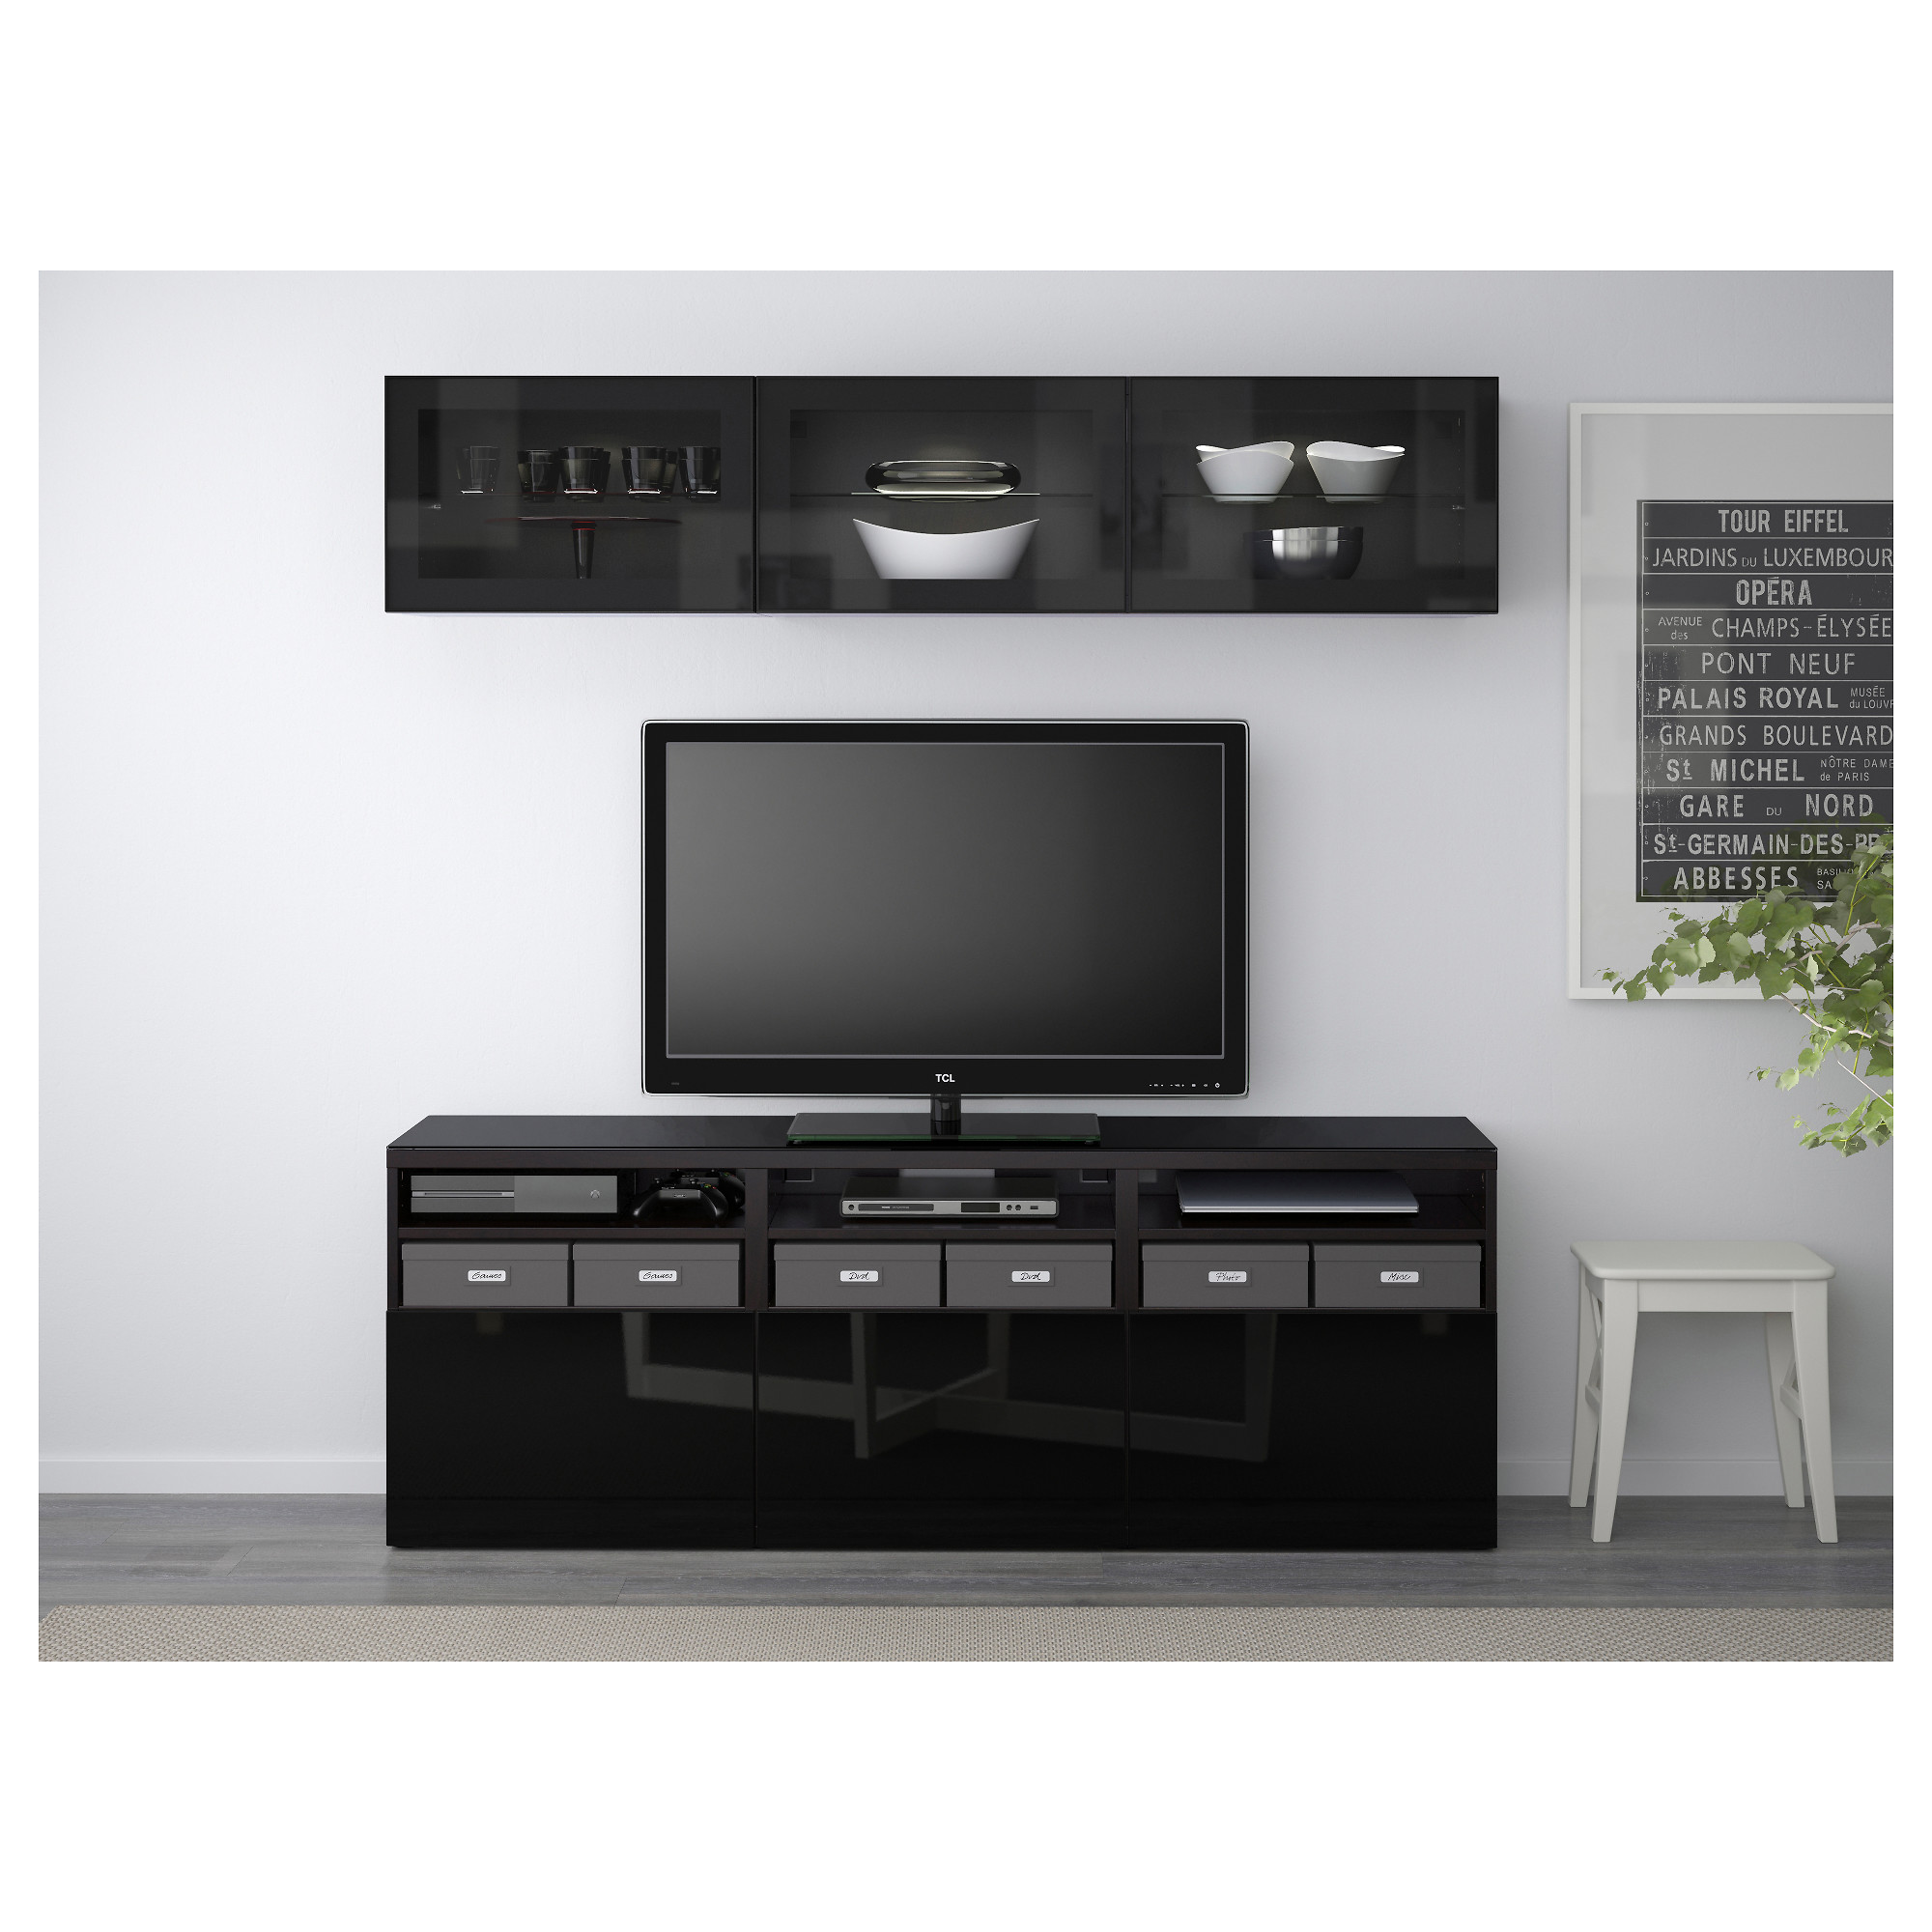 Best Tv Storage Combination Glass Doors Lappviken Sindvik Black  # Tour Dvd Ikea